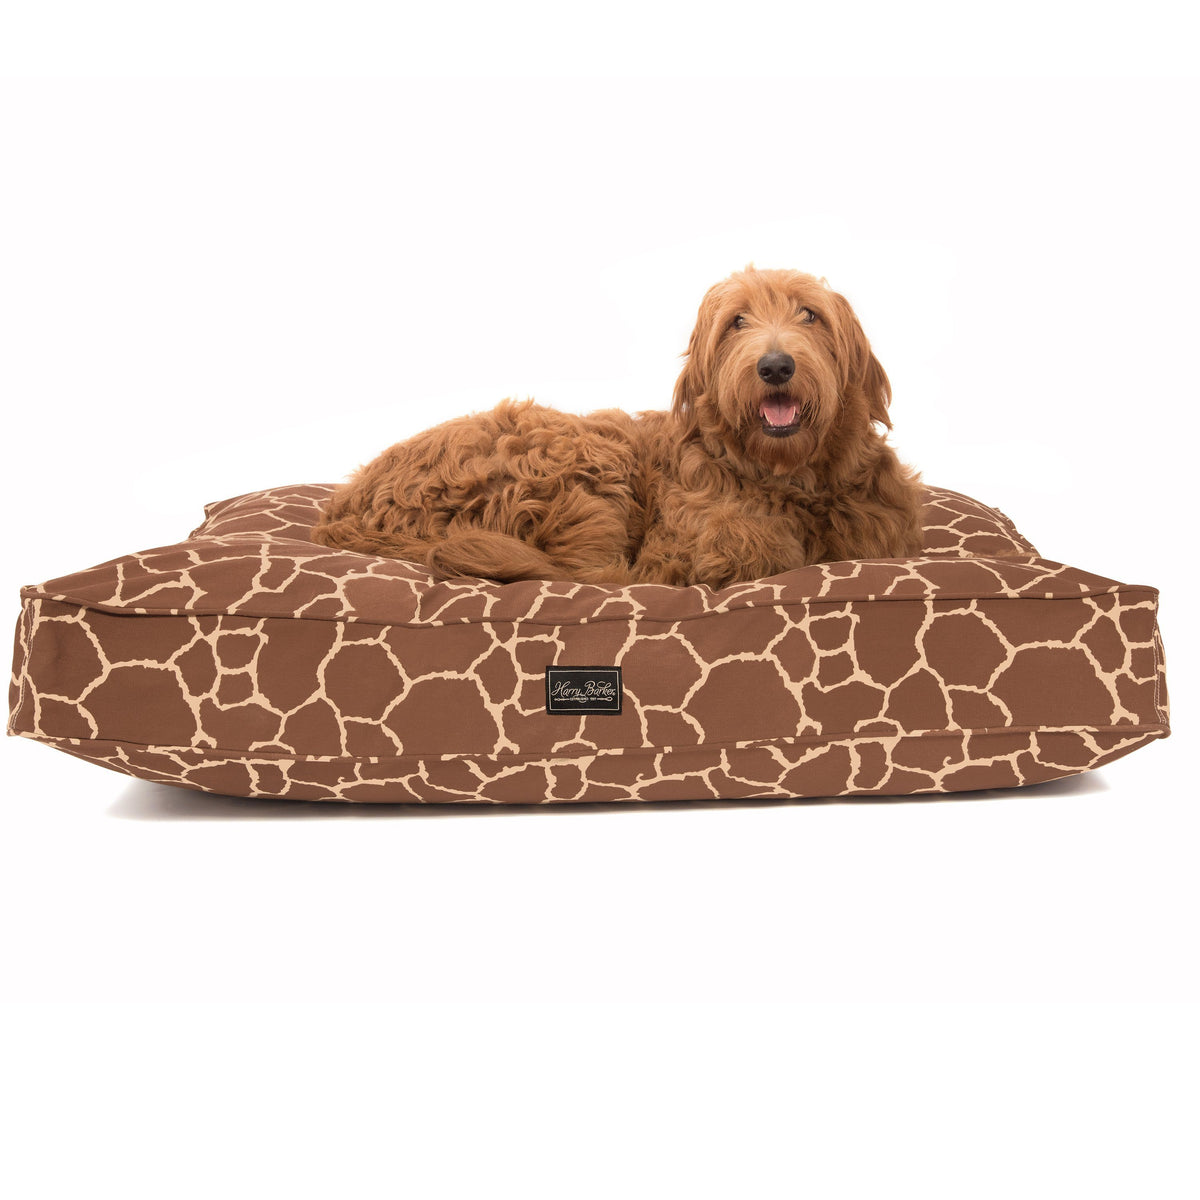 Bed Cover - Giraffe Cotton Canvas Dog Bed Cover